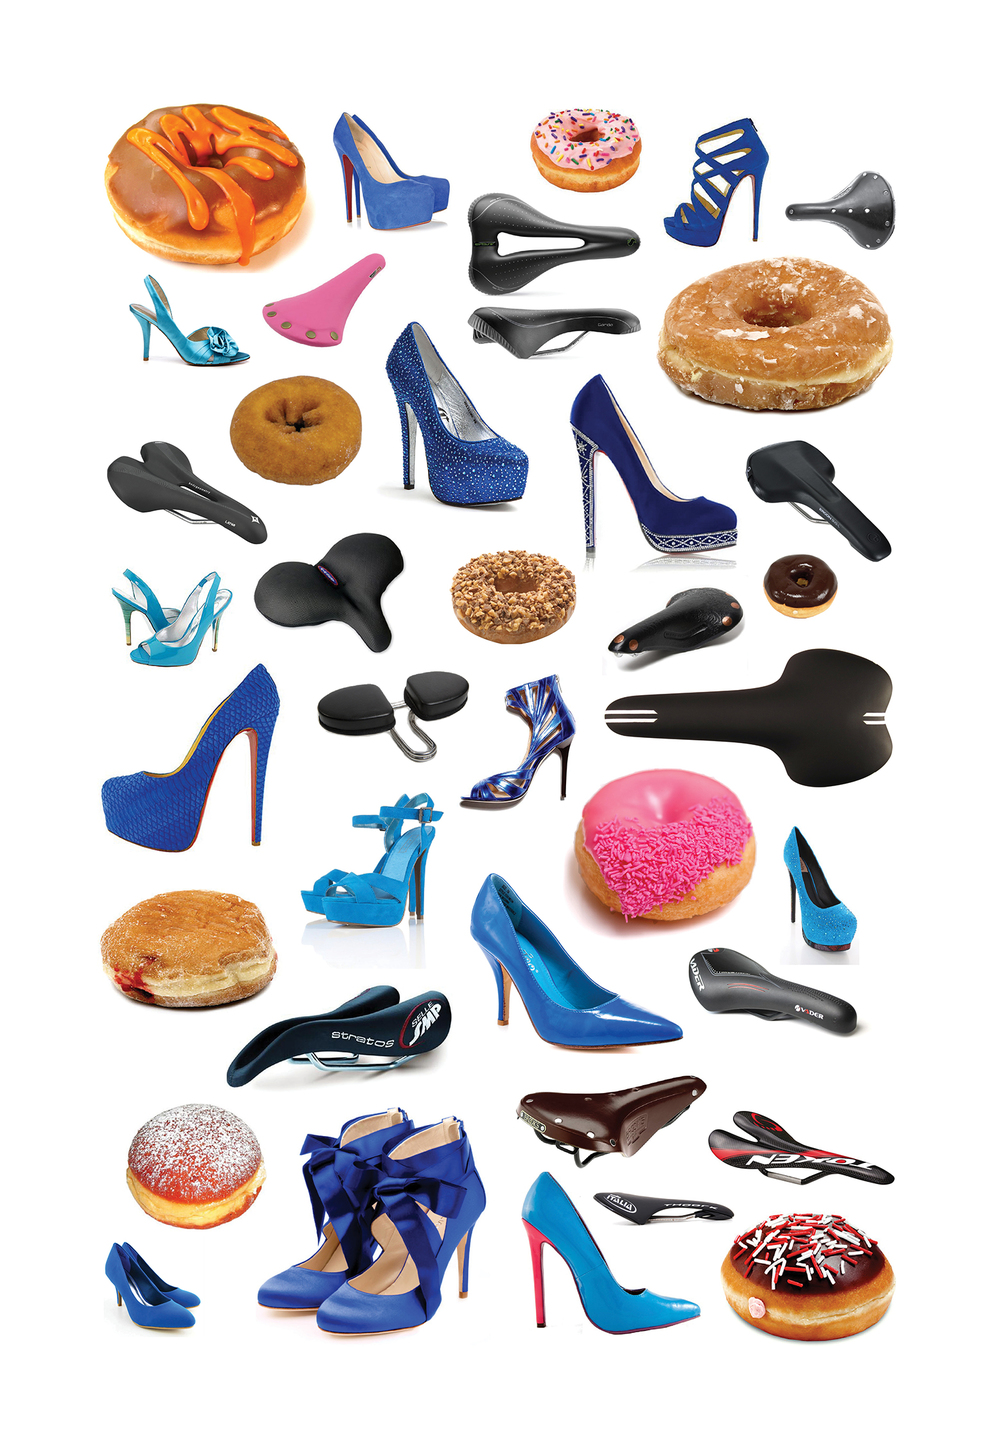 "Jeff Gibson   Set of two untitled prints (Donuts, heels, seats) ,  2014   Archival inkjet print Ed. 1 of 3   Courtesy of the artist   39"" x 27"" each   Retail Value: $3,000   Opening Bid: $2,000"